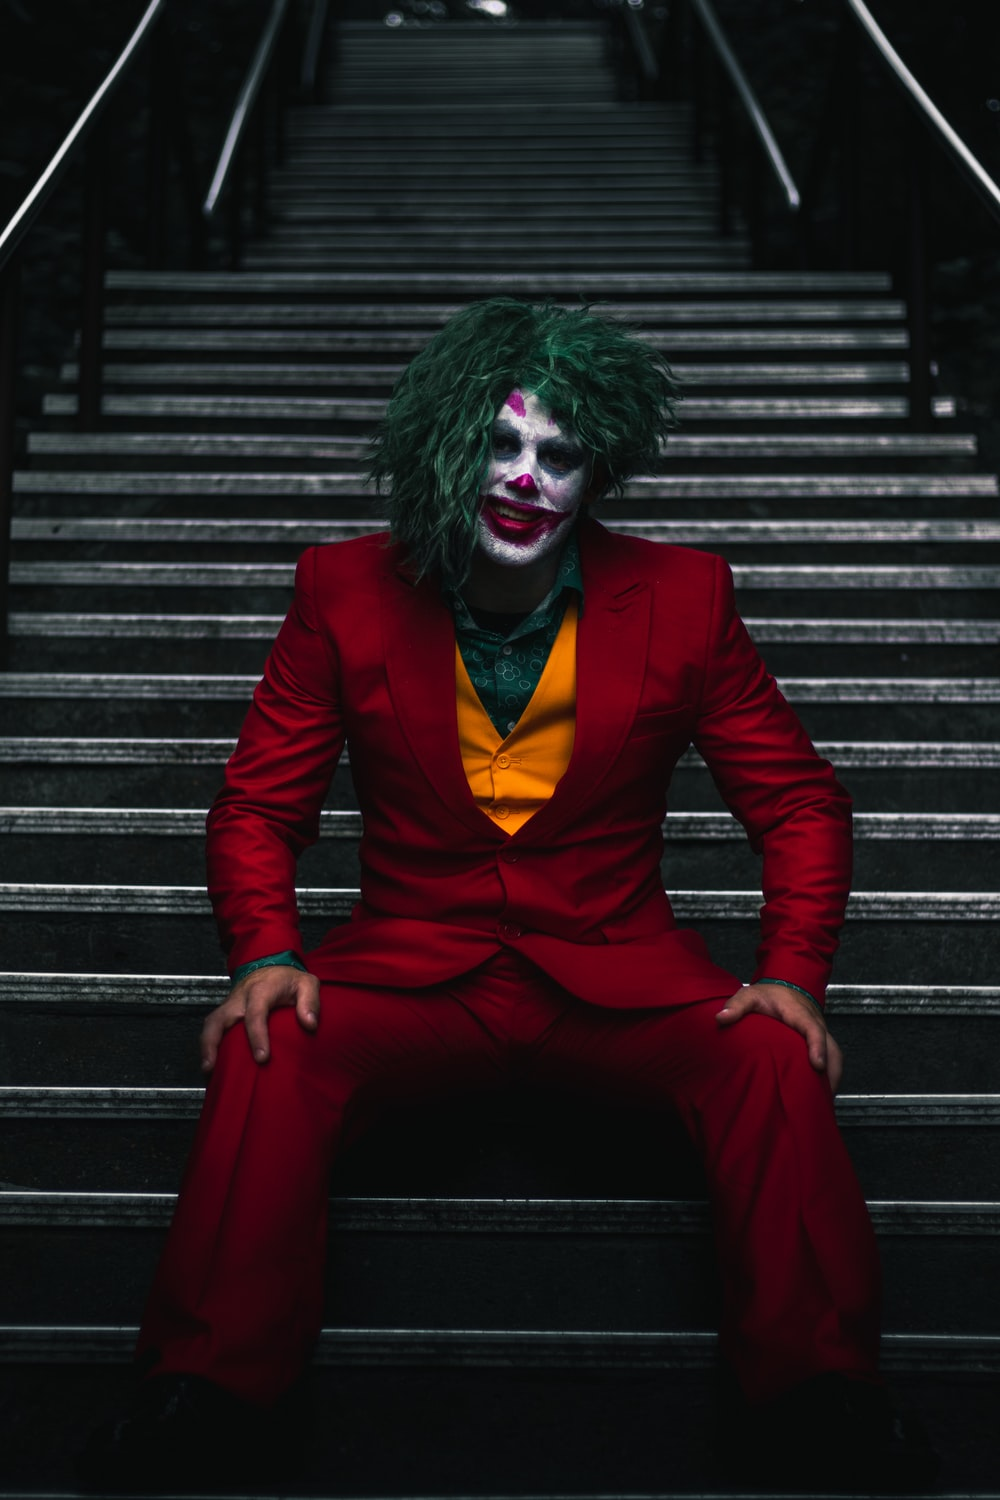 Joker on stairs